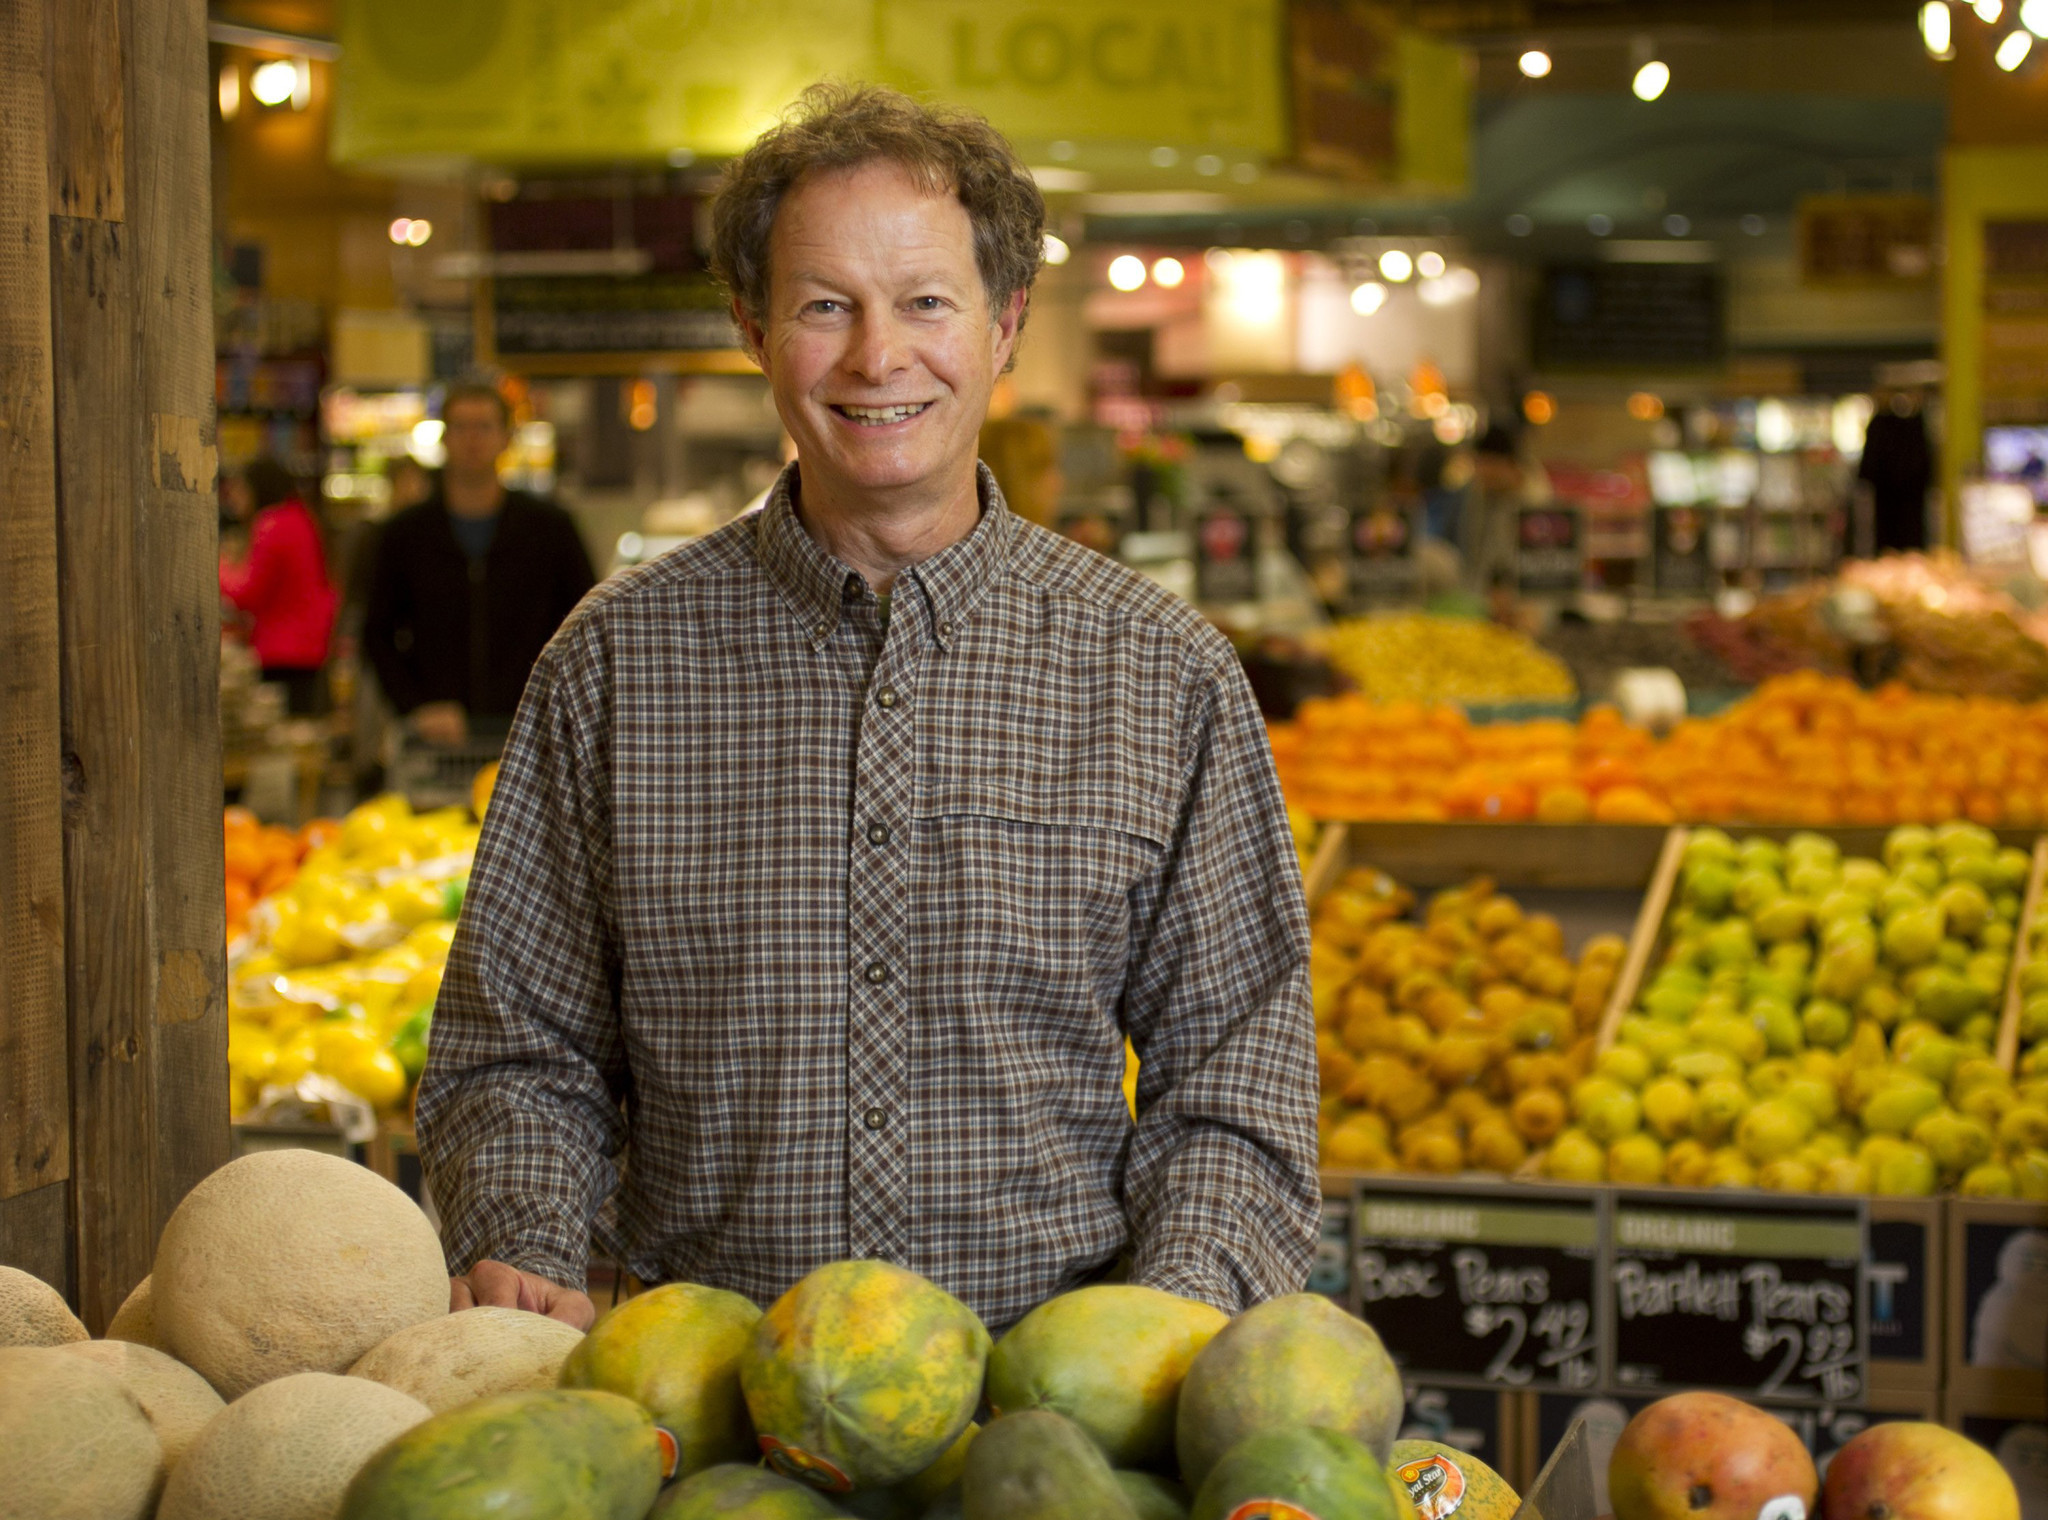 John Mackey, CEO of Whole Foods